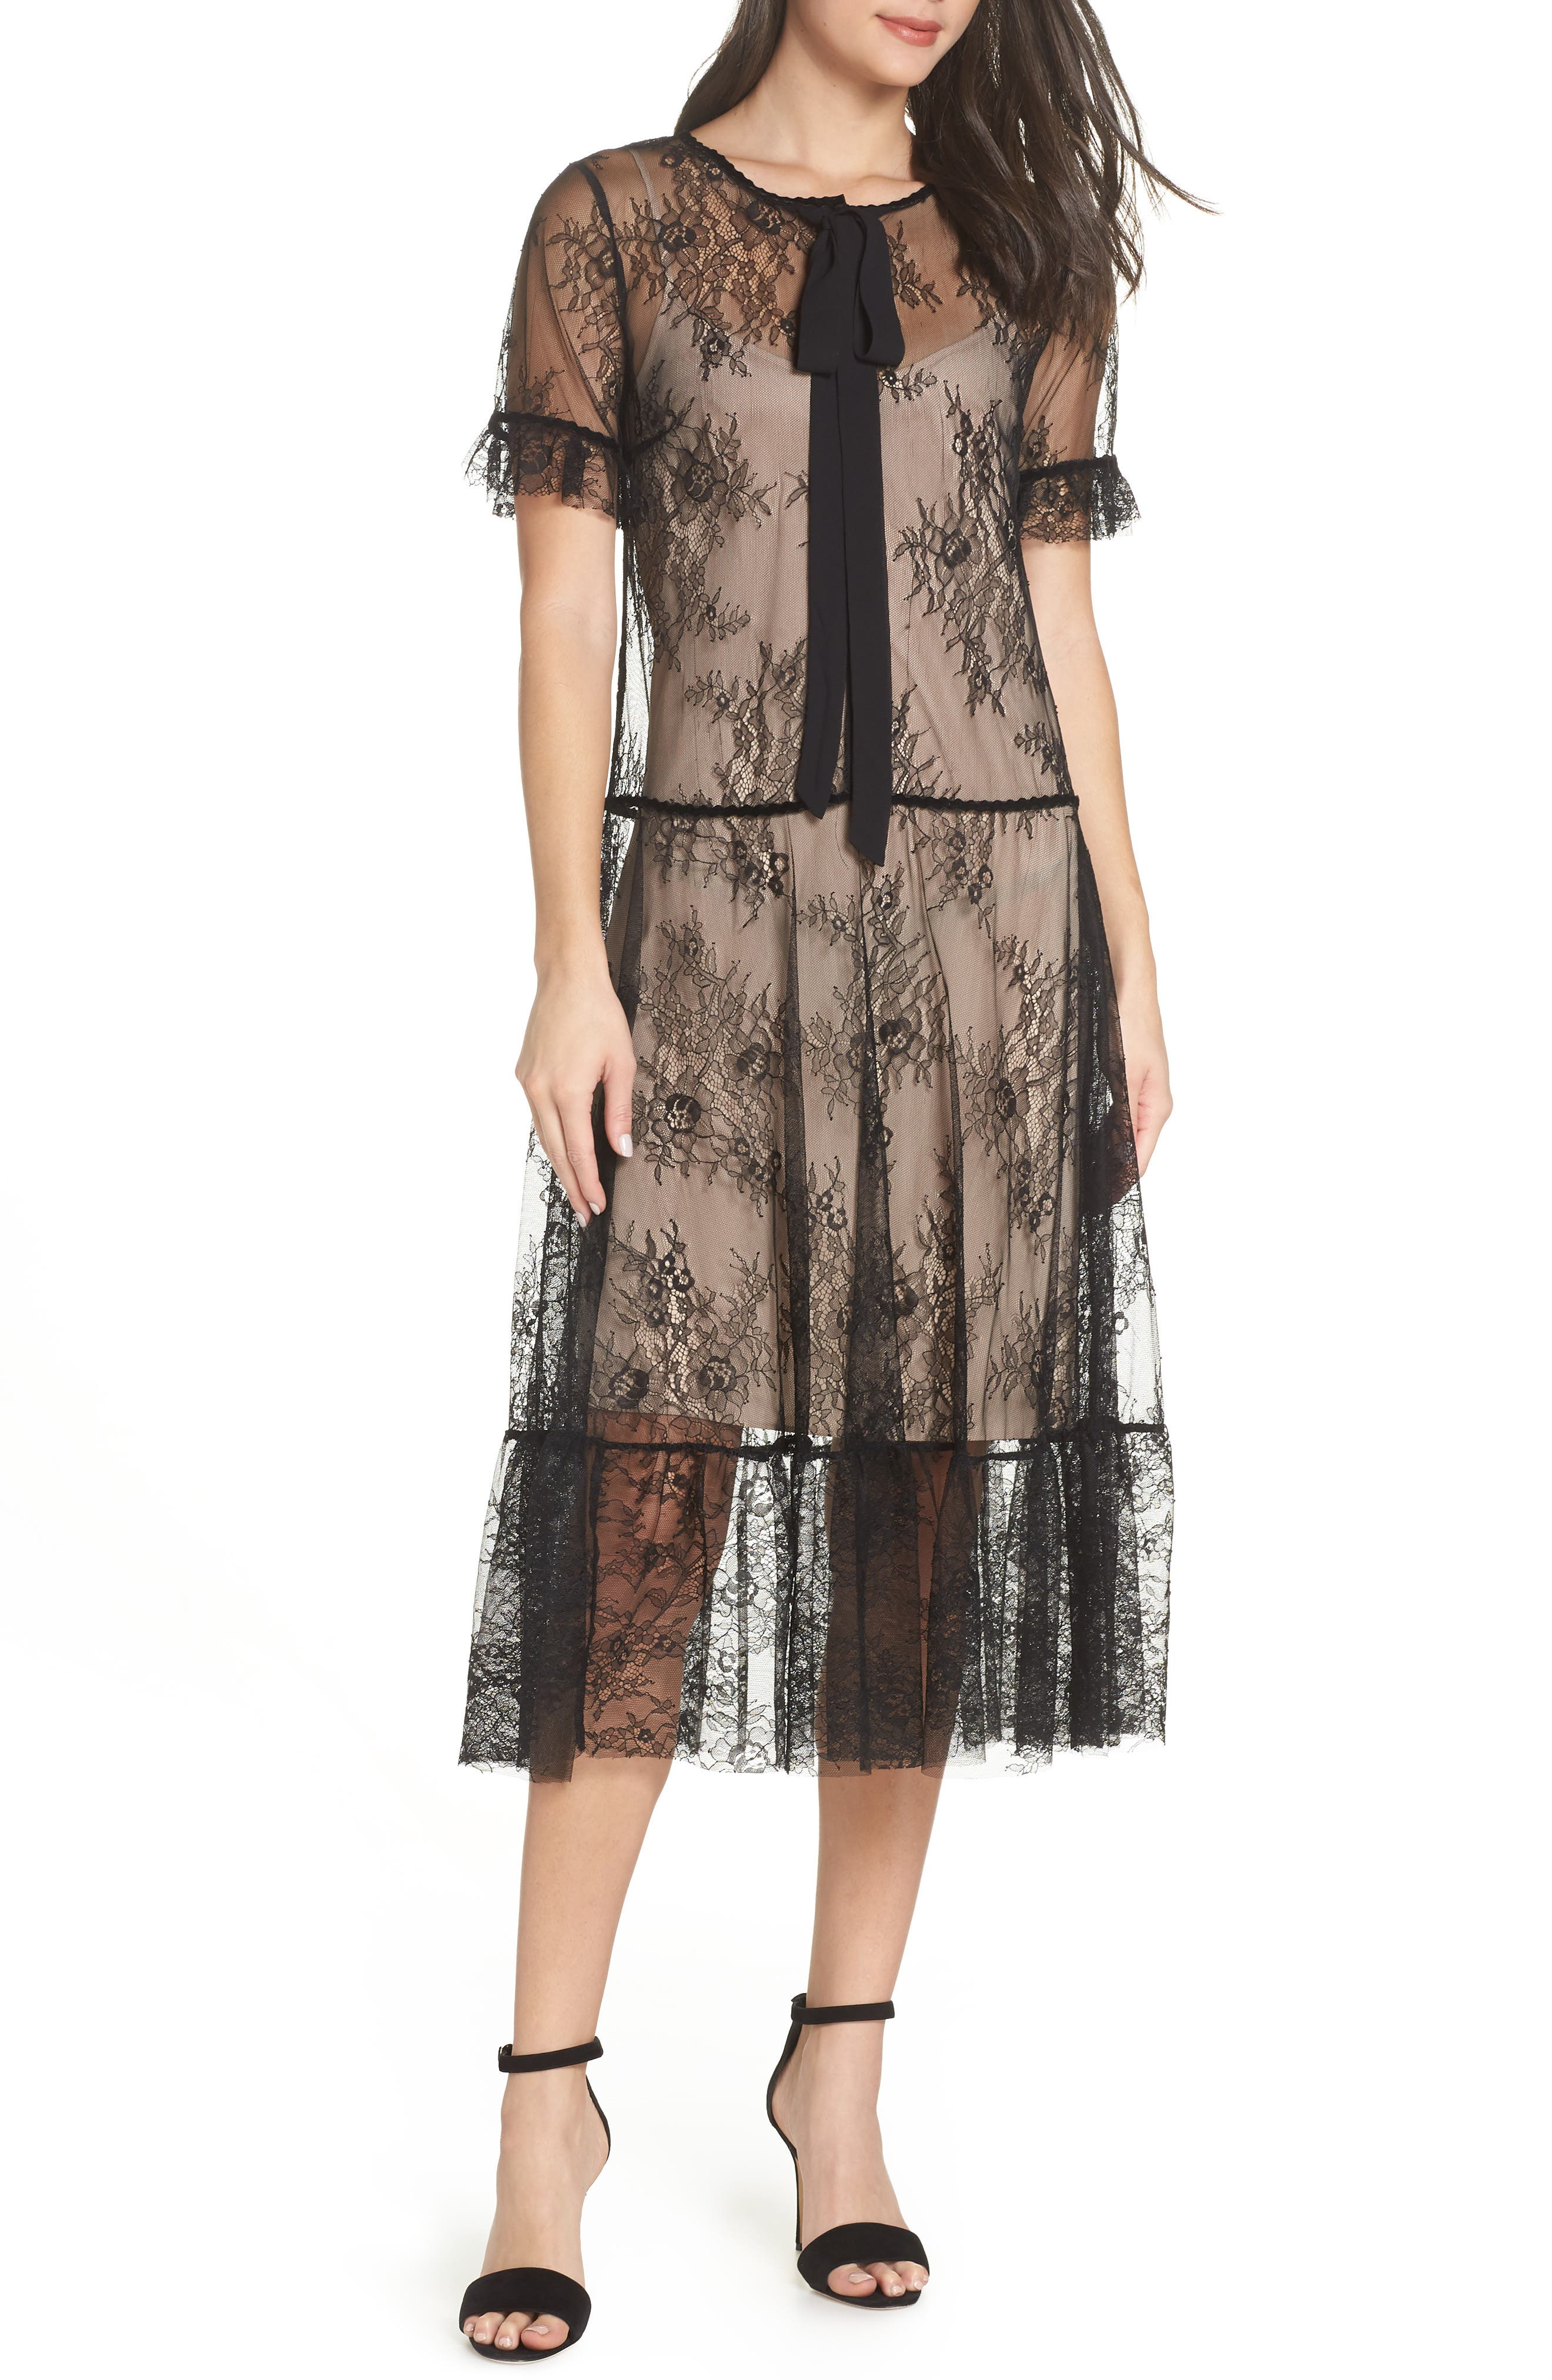 1920s Downton Abbey Dresses Womens Caara Street Sheer Lace Midi Dress $159.00 AT vintagedancer.com